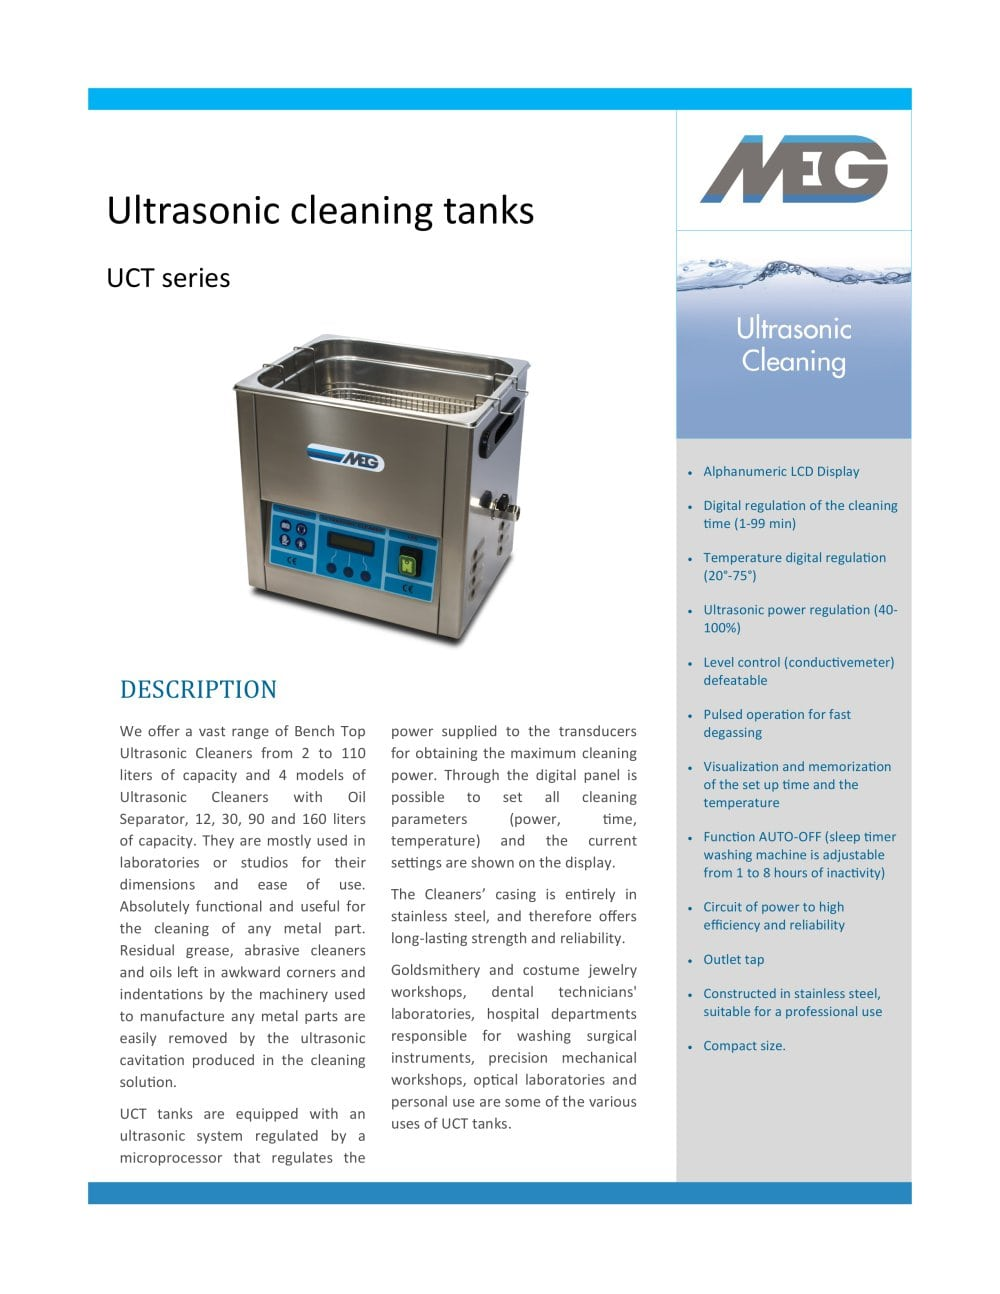 Uct Ultrasonic Cleaning Tanks Meg Pdf Catalogue Technical Electronic Timer Circuit For Washing Machine 1 2 Pages